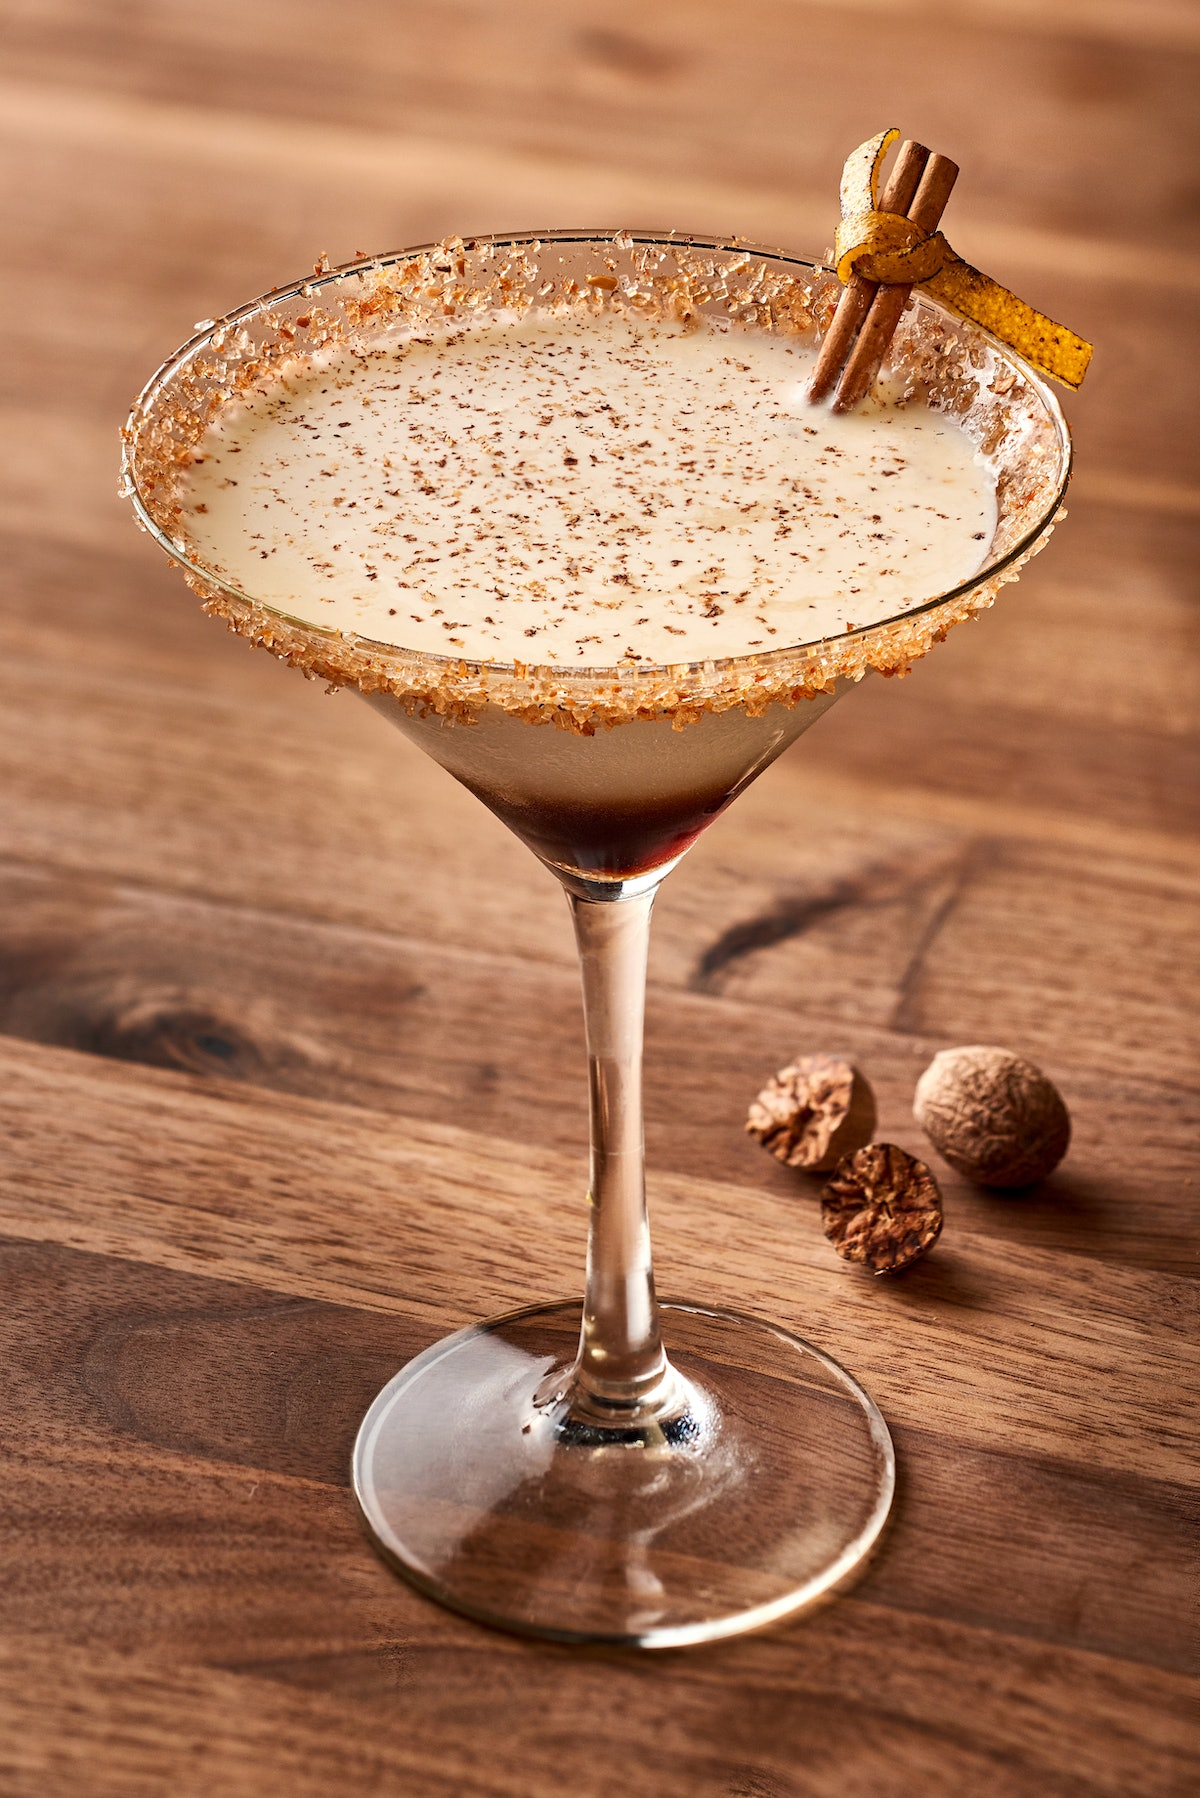 This Pumpkin White Russian is an Instagrammable Disney drink that's in a sugar-rimmed martini glass.